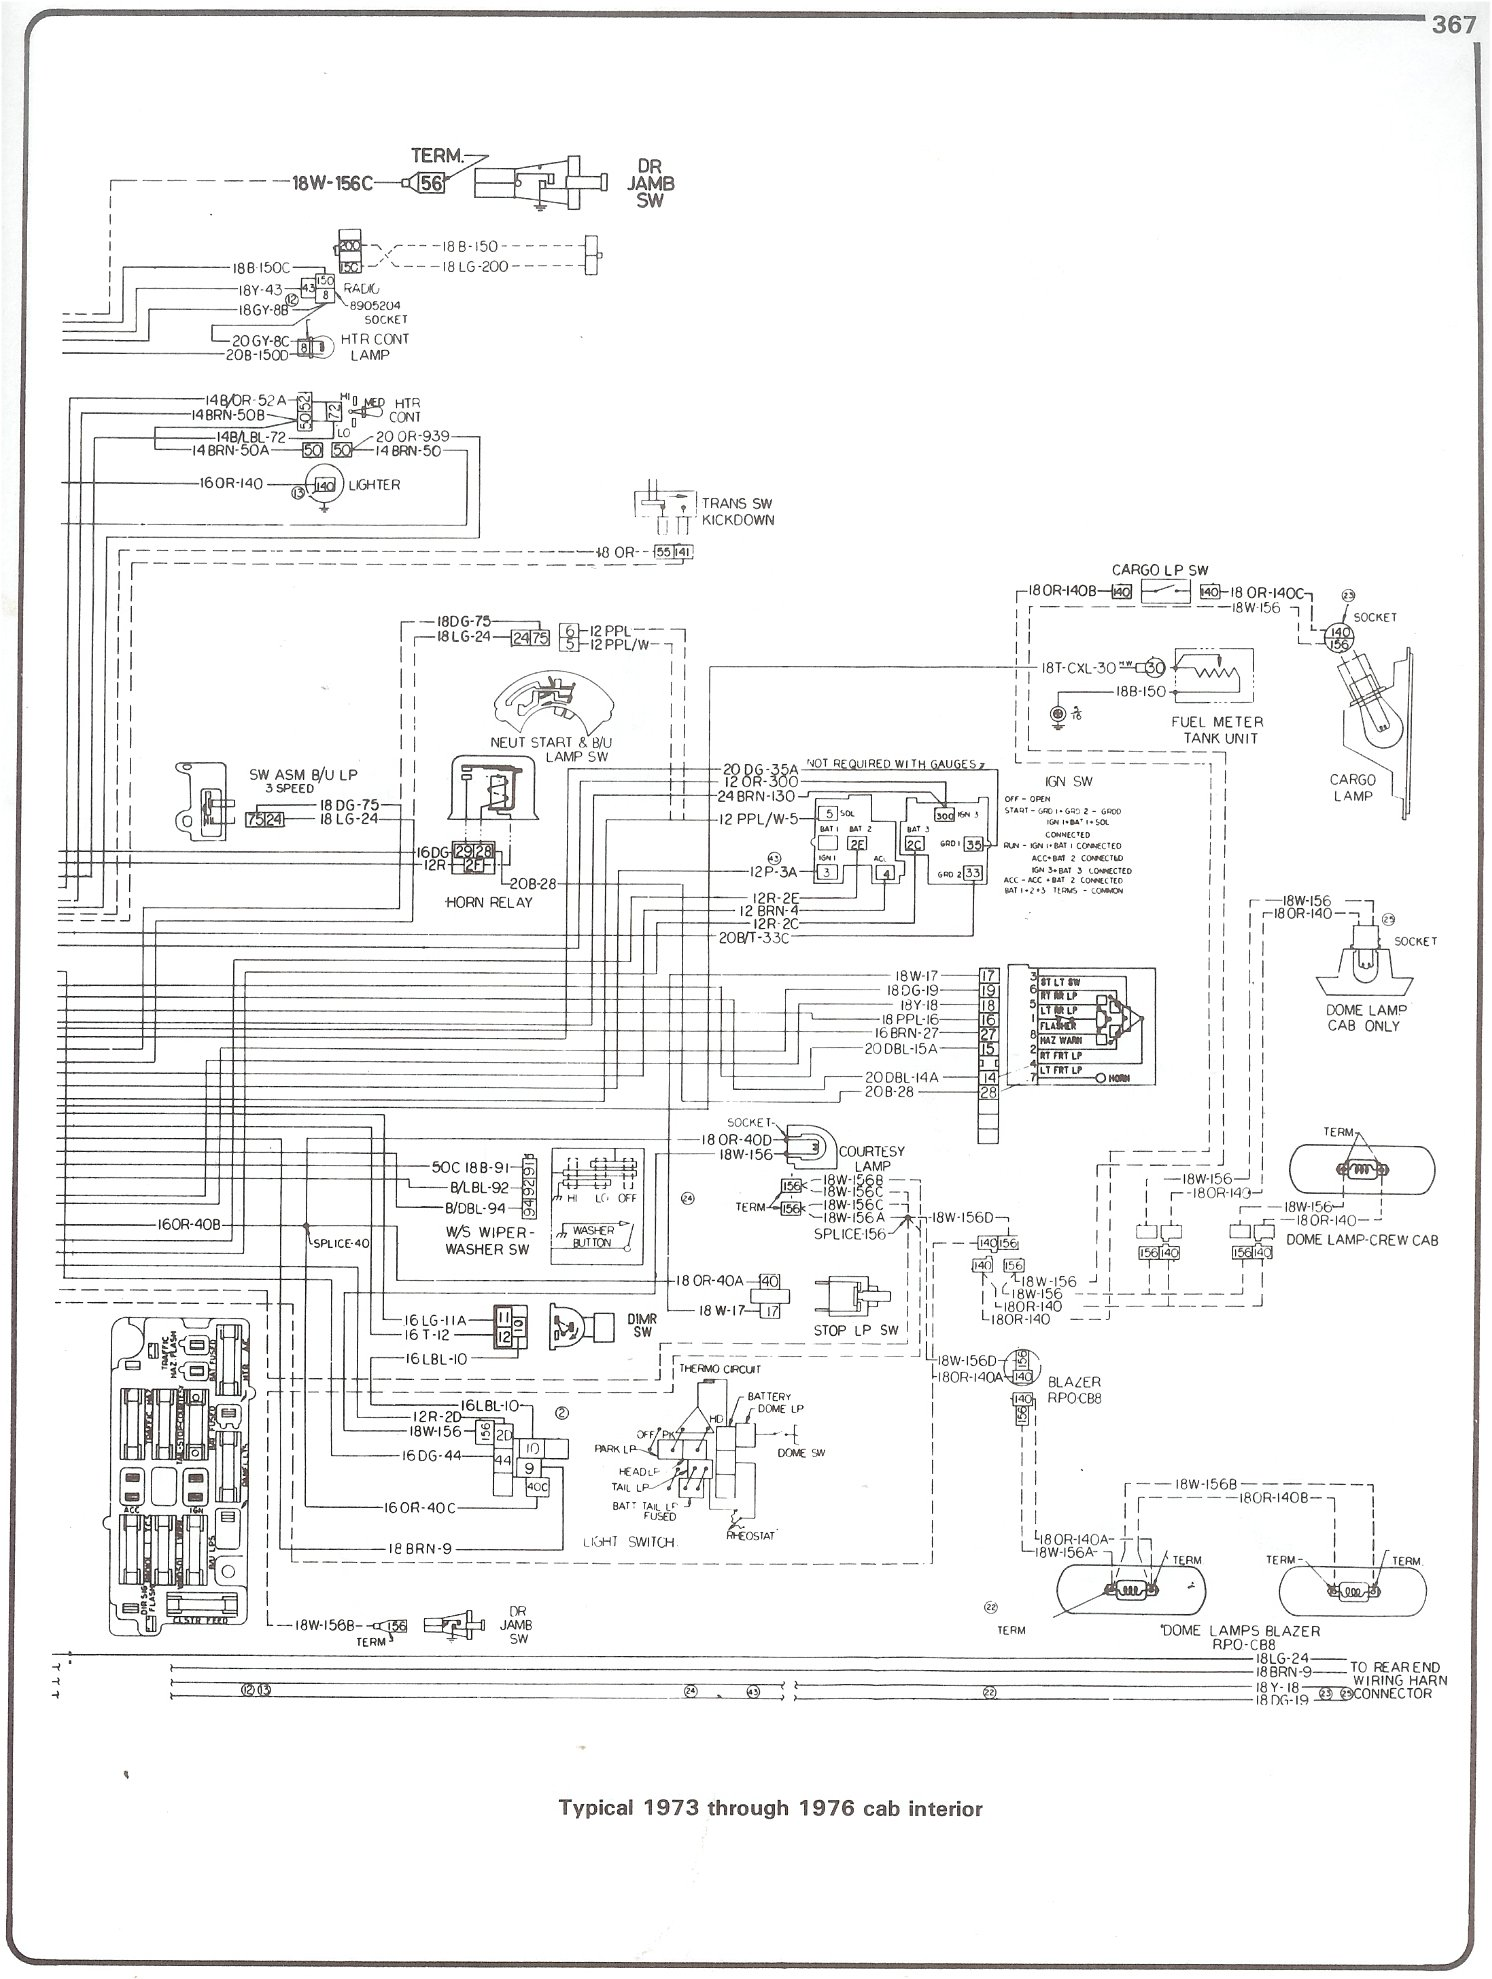 Cab Inter on Fuel Gauge Wiring Diagram For Ford 77 C10